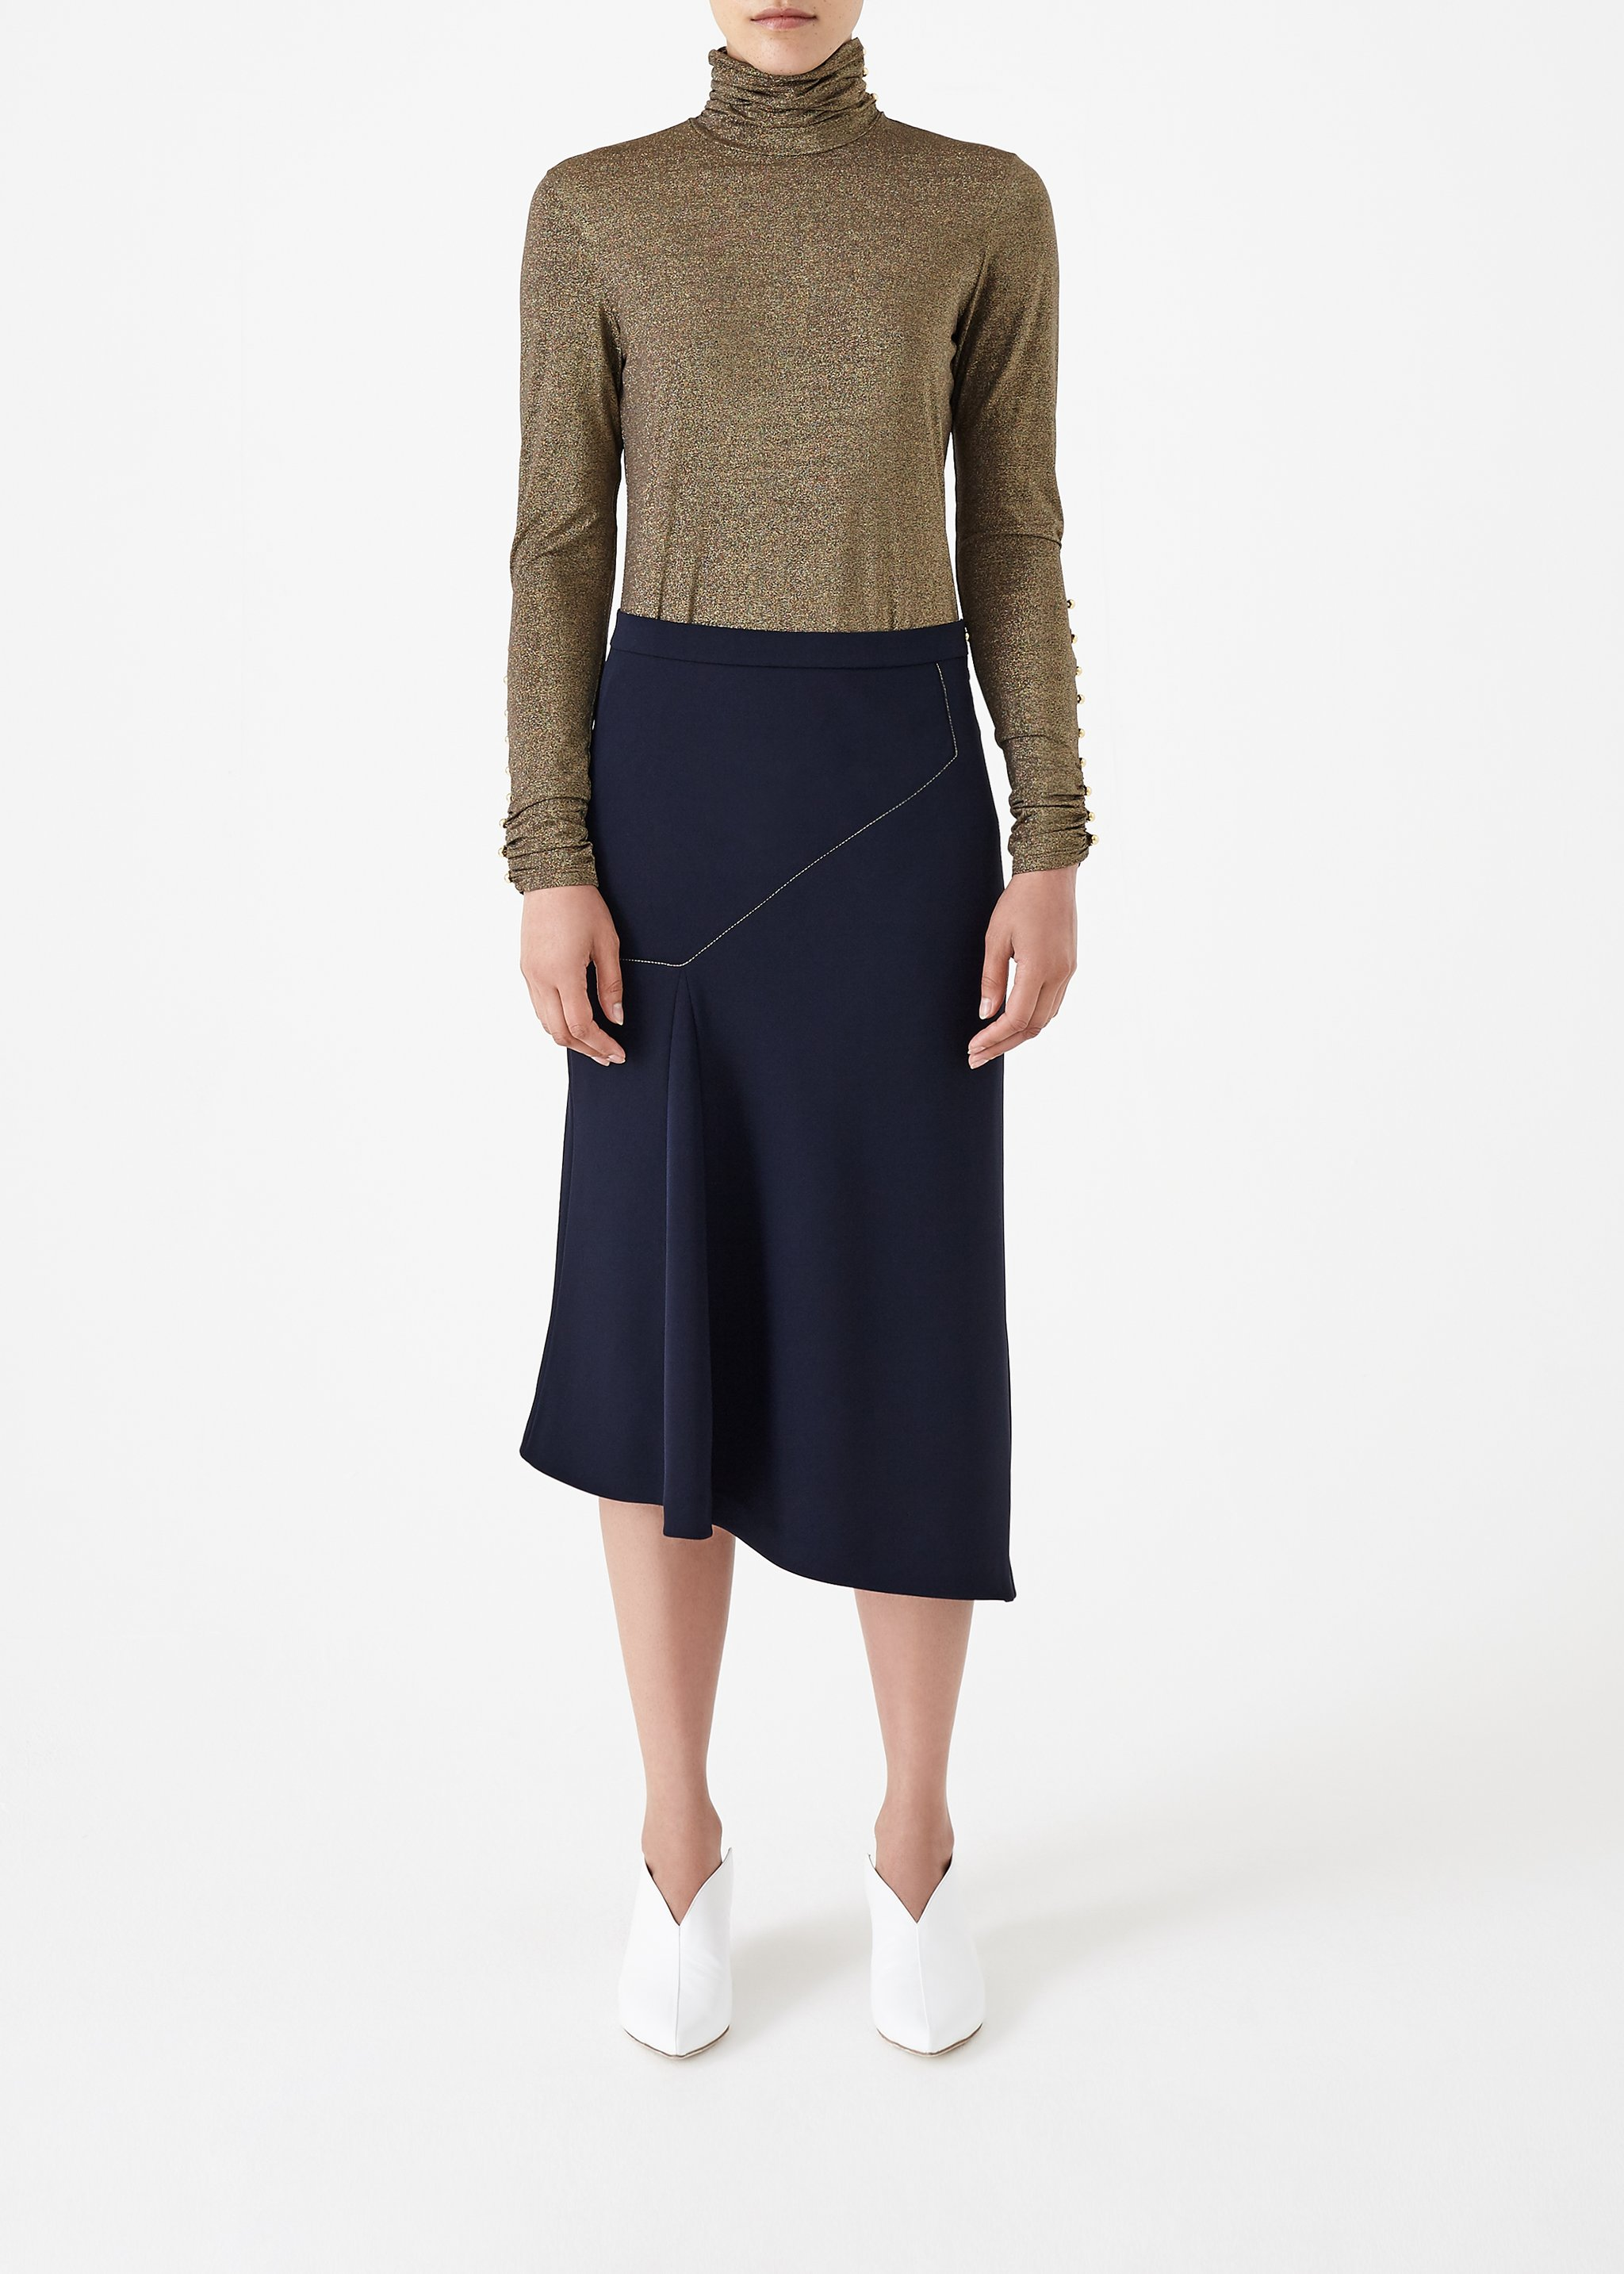 Gold Clover Top by Bozena Jankowska on curated-crowd.com